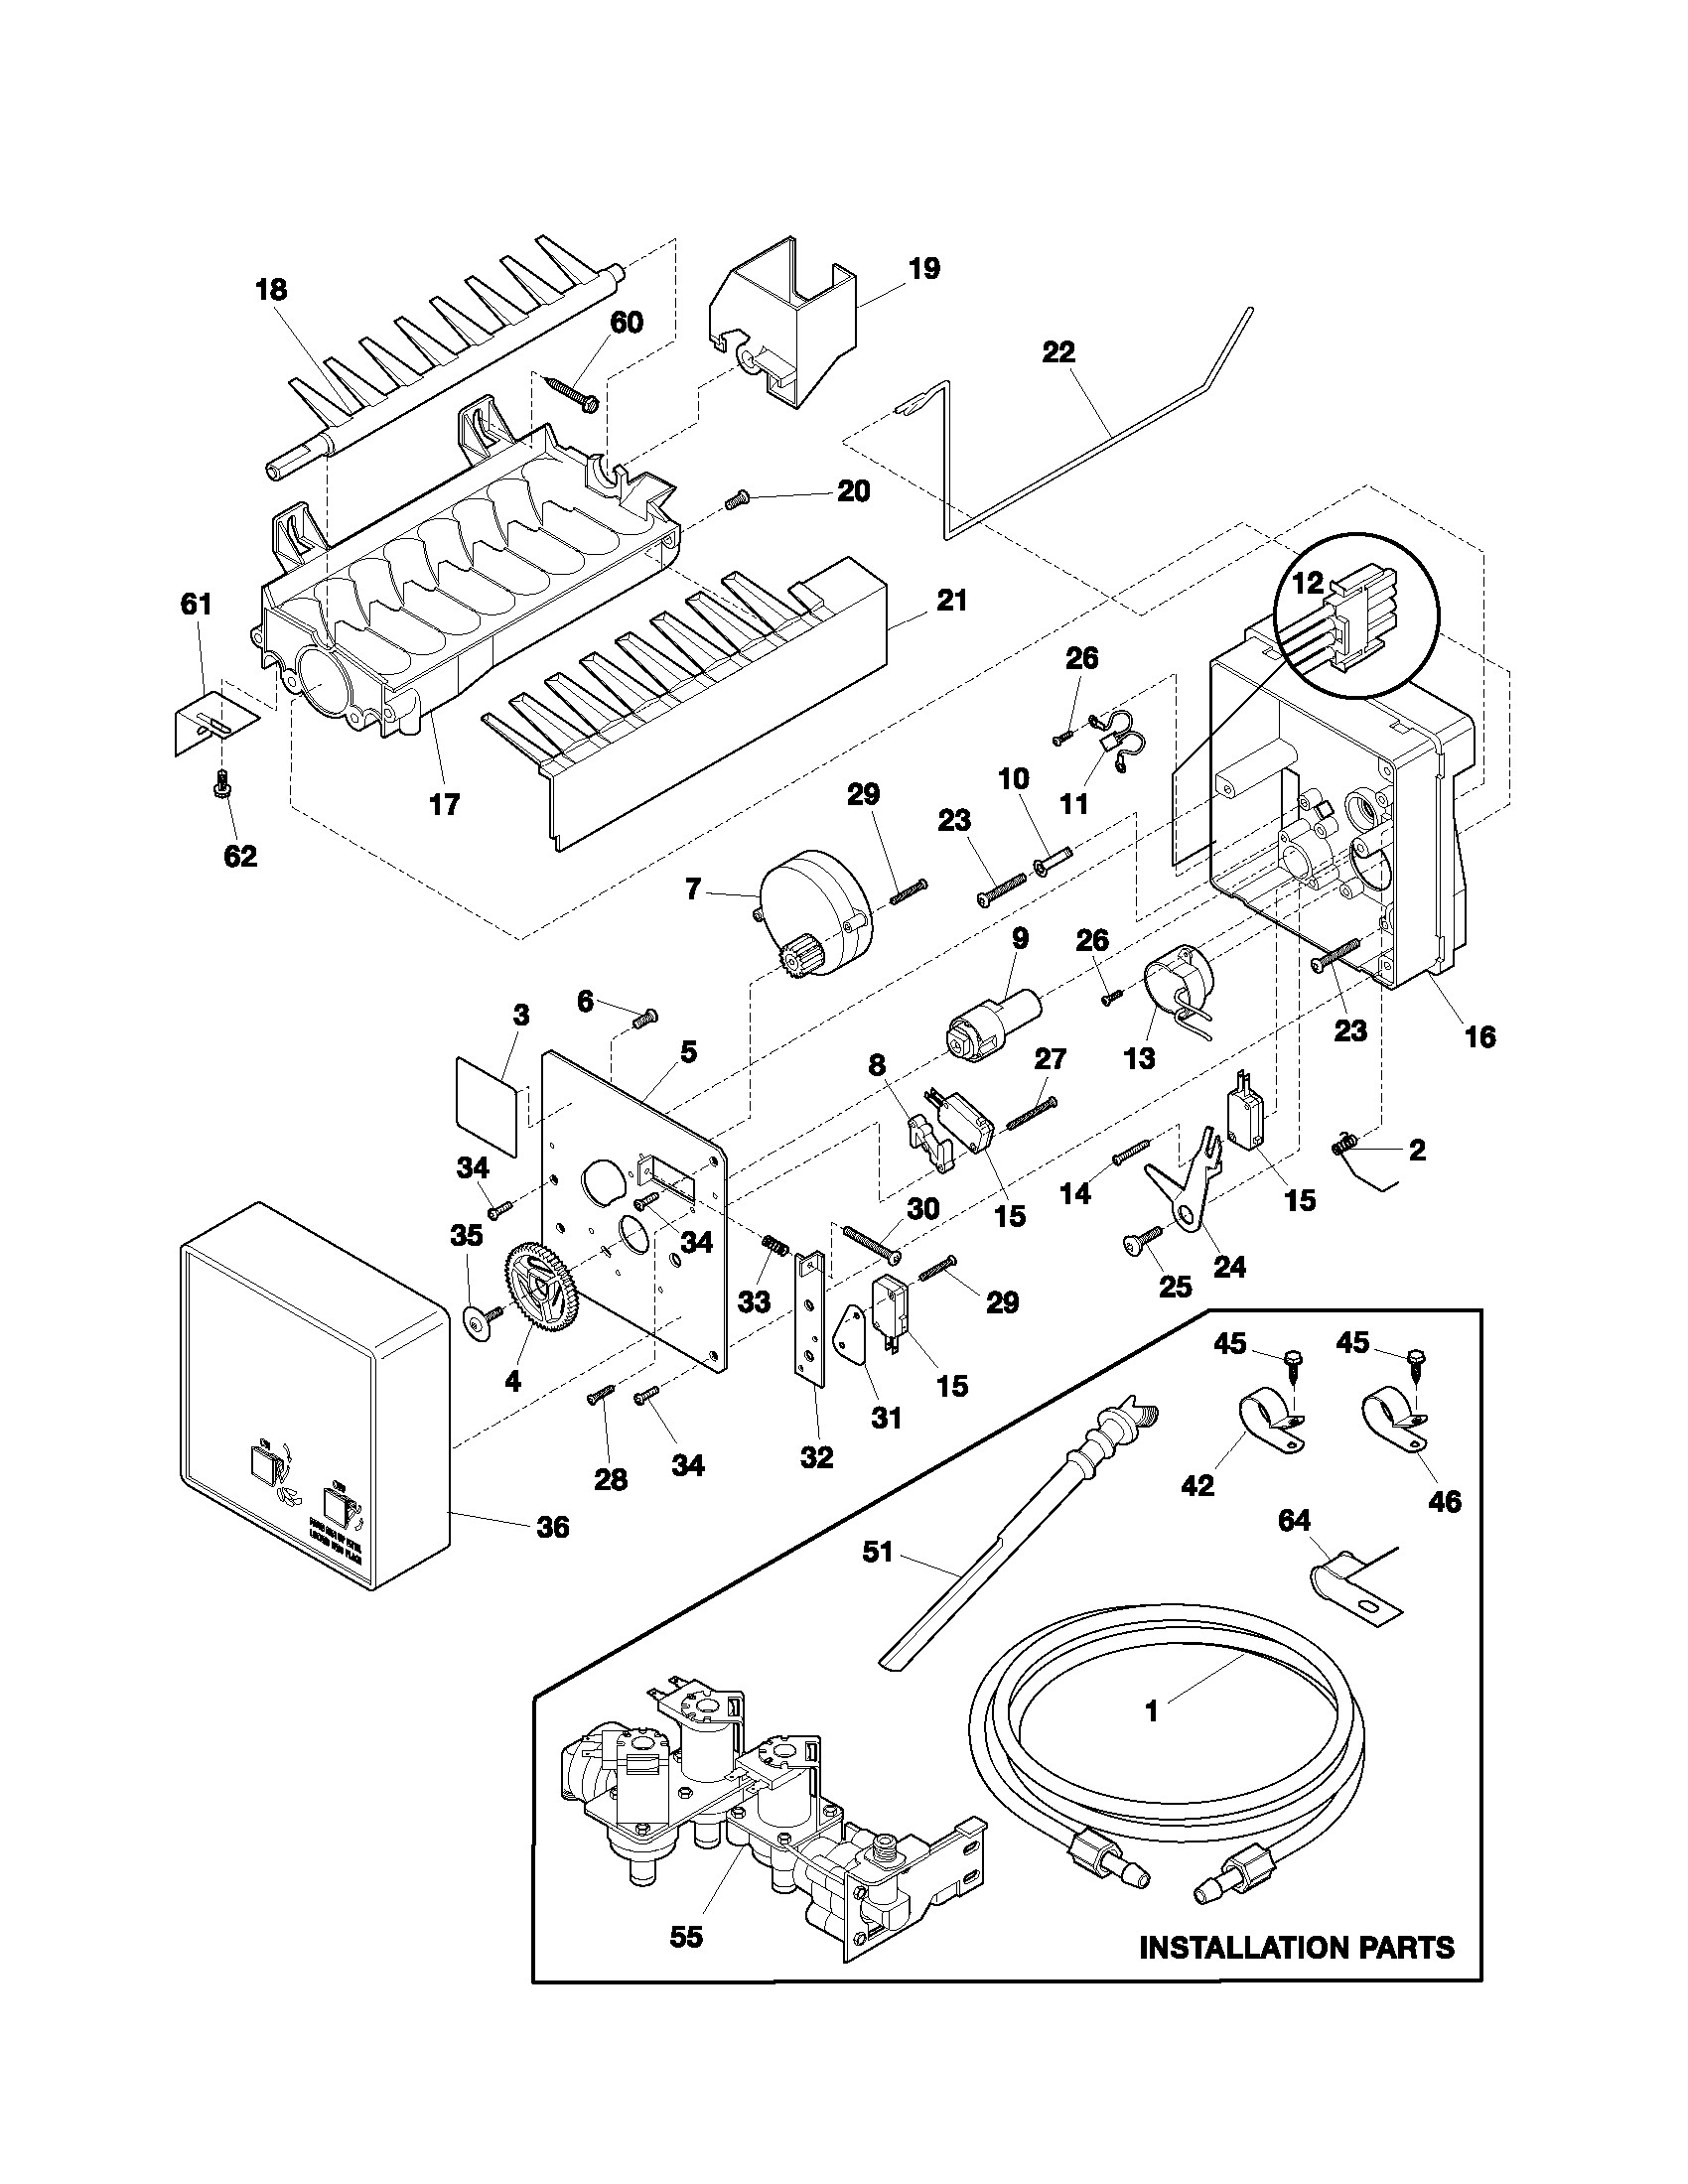 Frigidaire Dishwasher Parts Diagram Frigidaire Refrigerator Parts Model Frs26kr4cq1 Of Frigidaire Dishwasher Parts Diagram